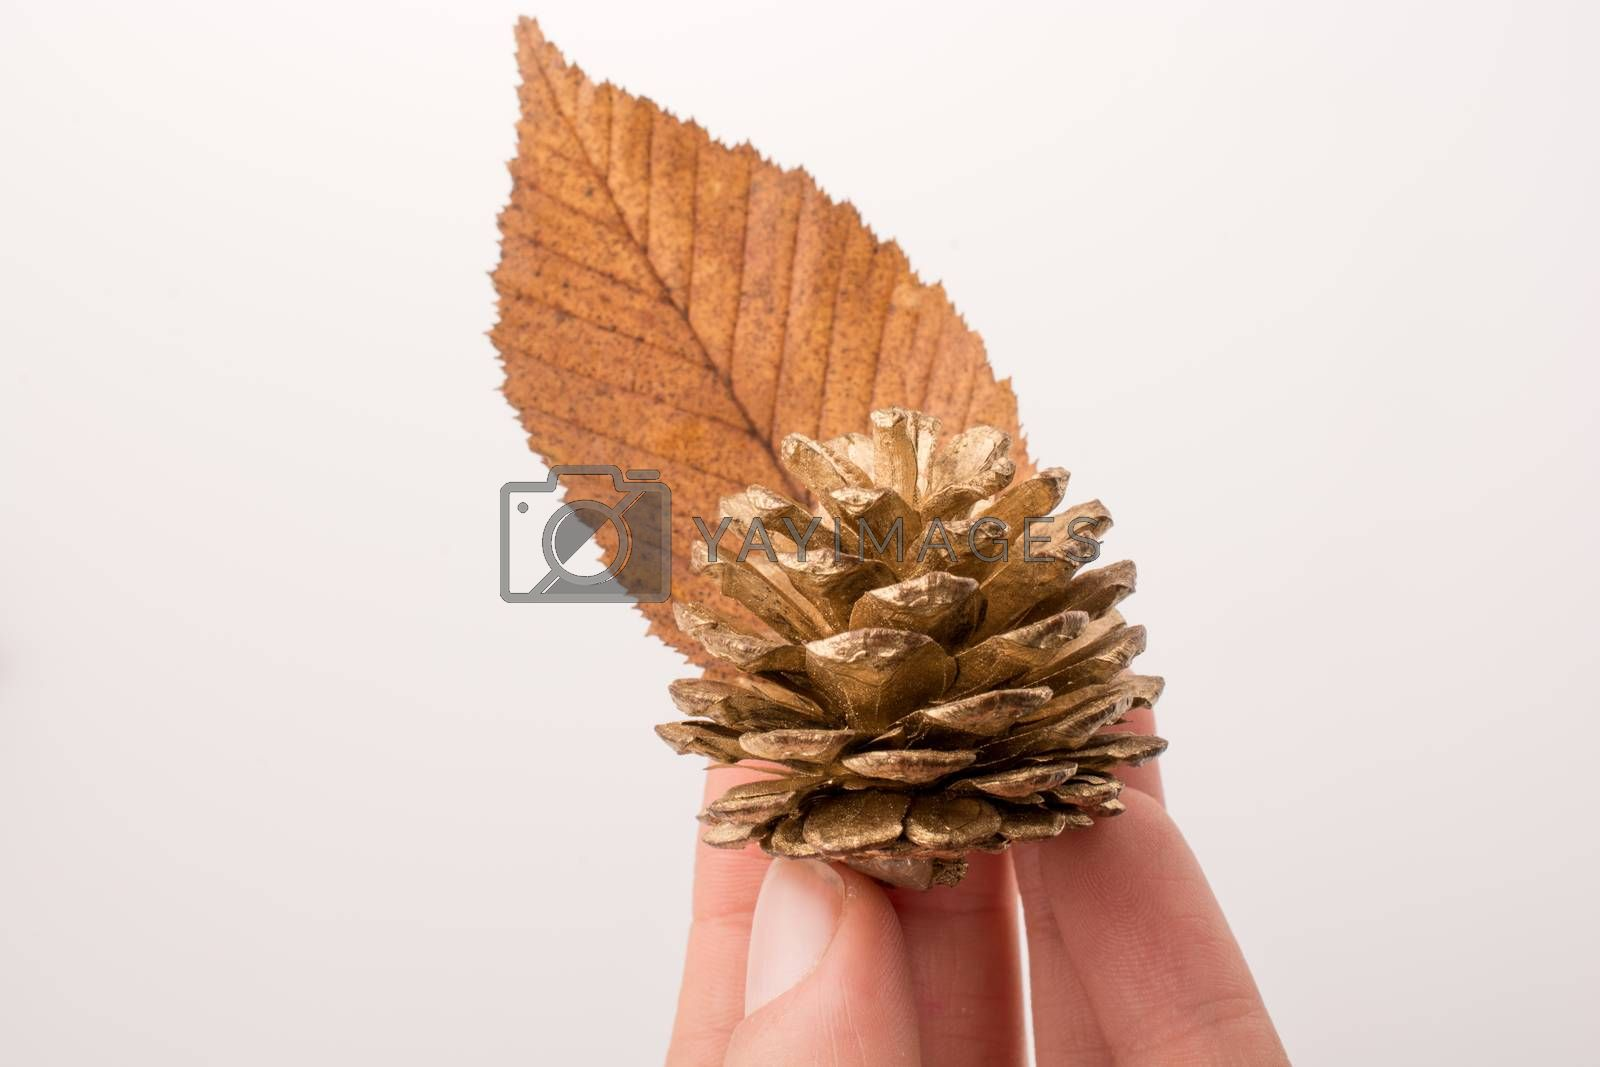 Pine cone and a leaf in hand on a white background